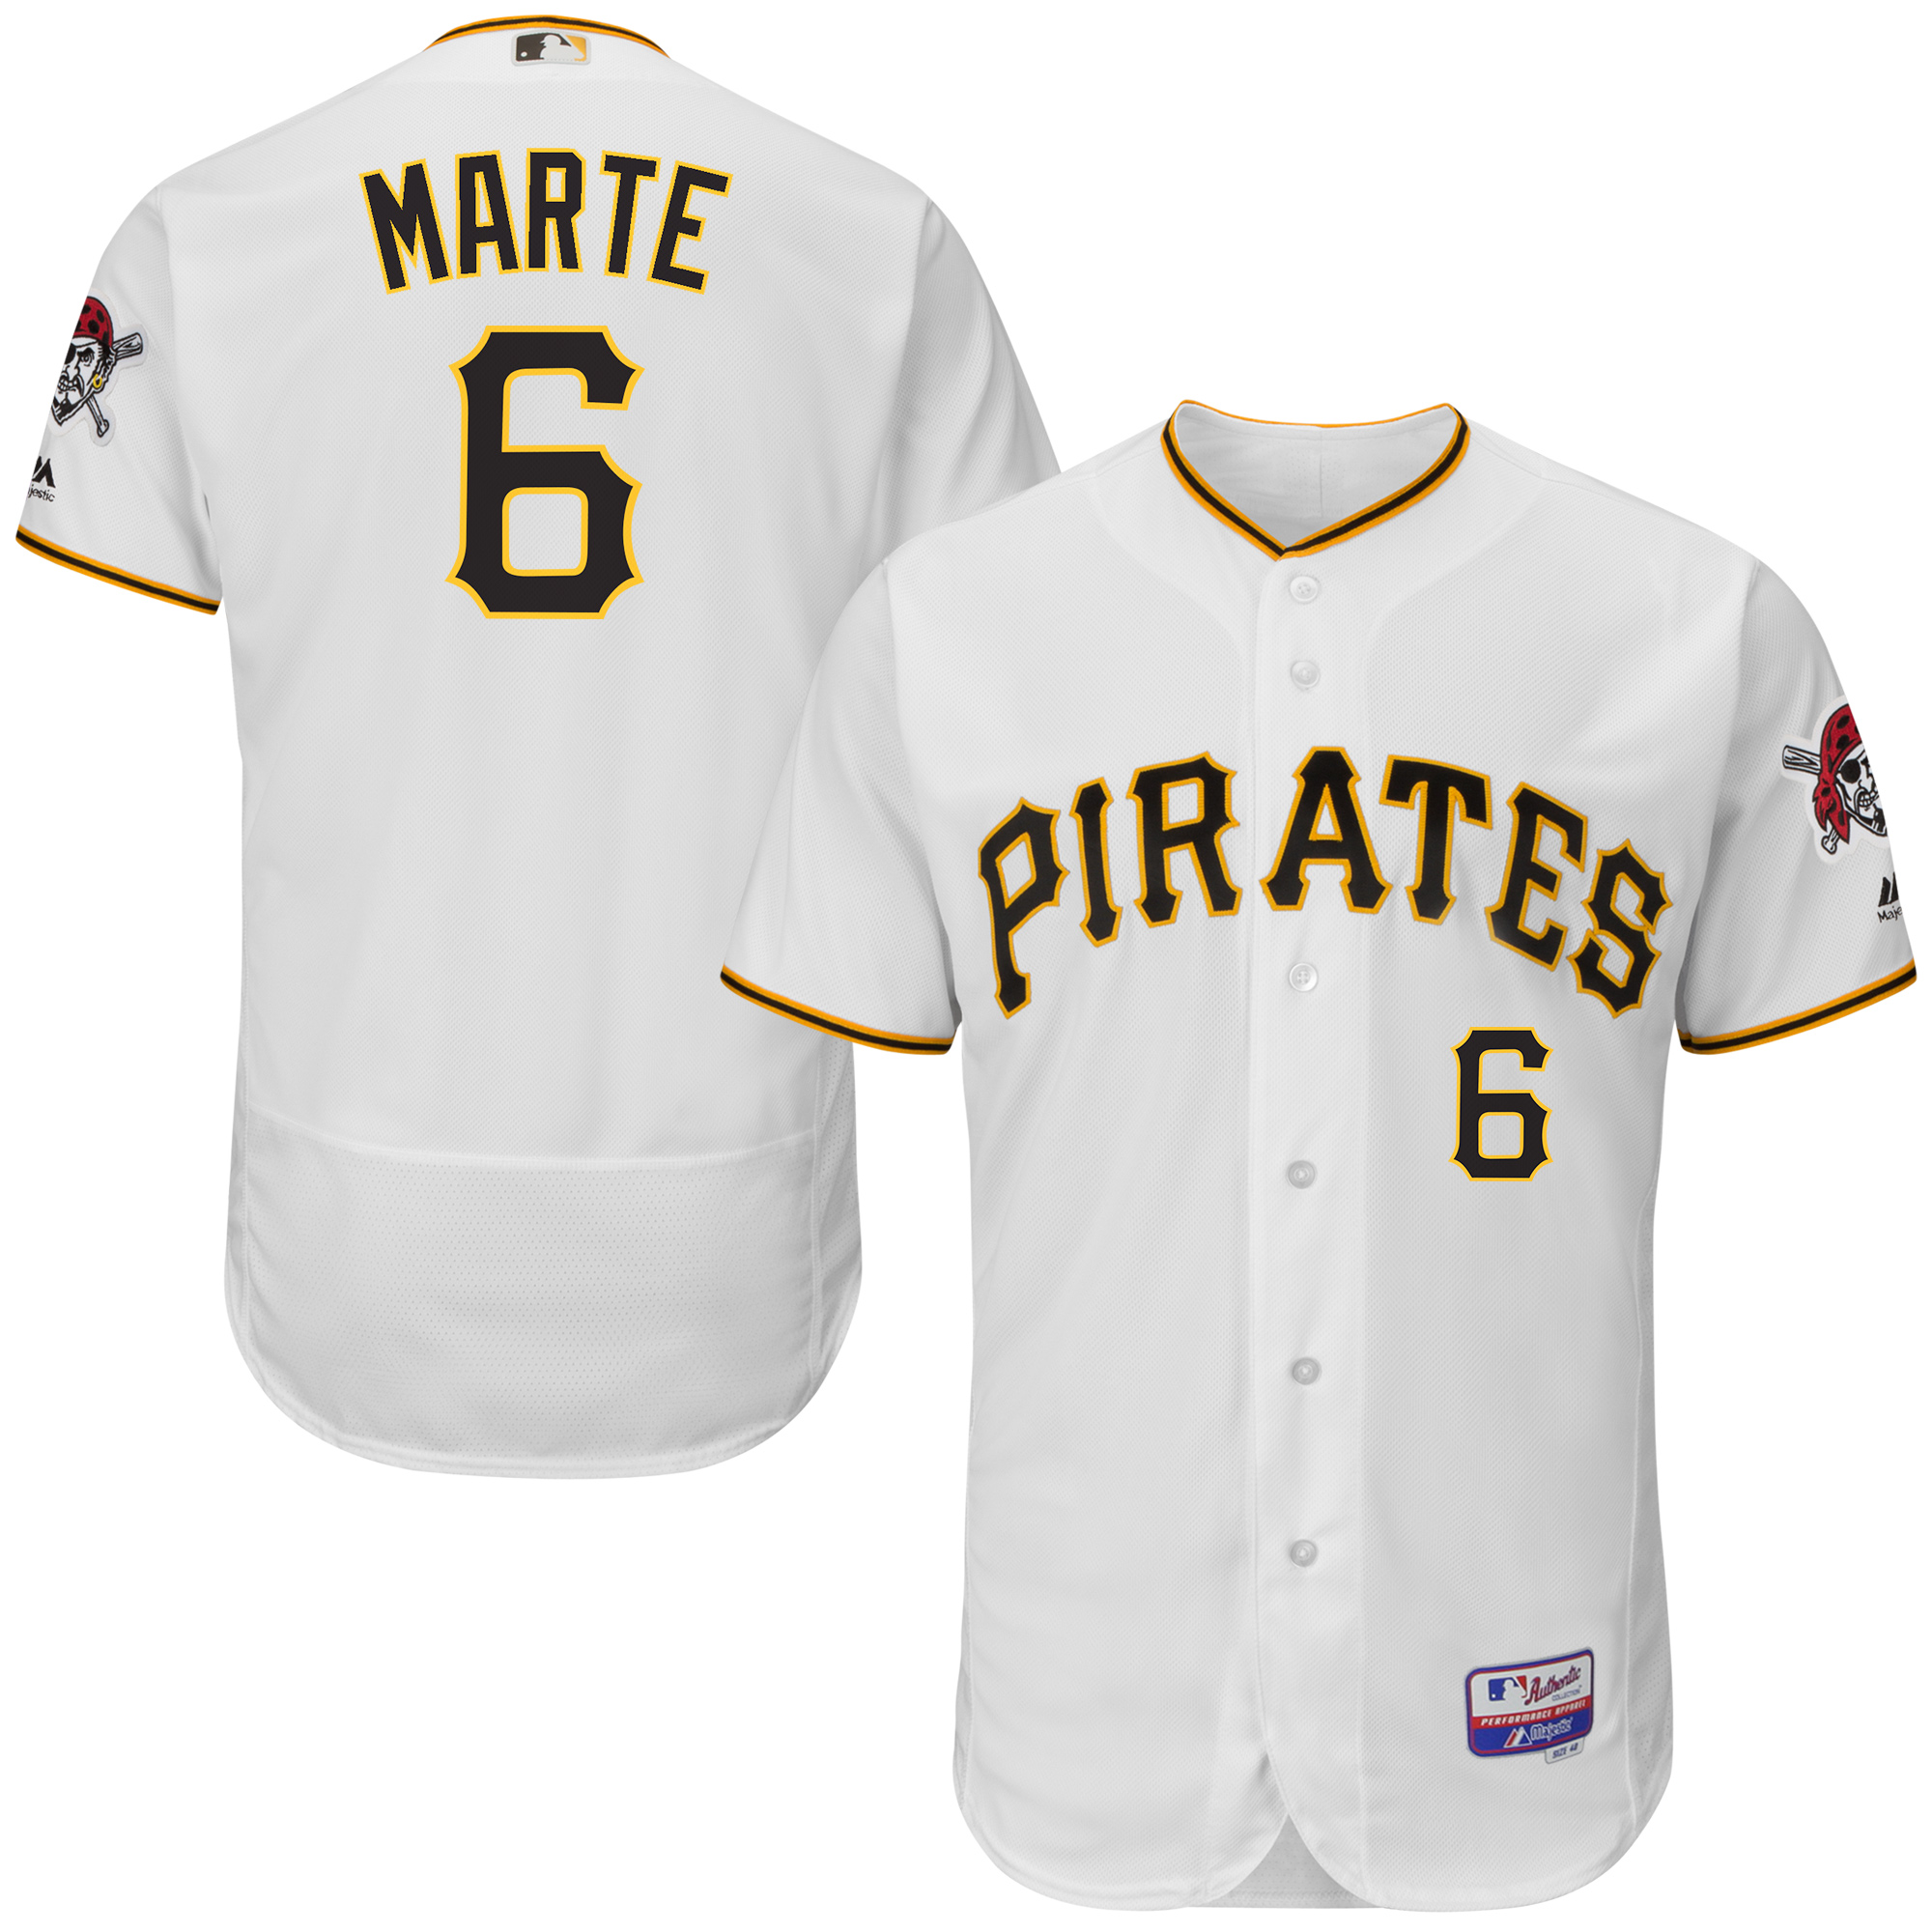 Starling Marte Pittsburgh Pirates Majestic Player Authentic Jersey - White